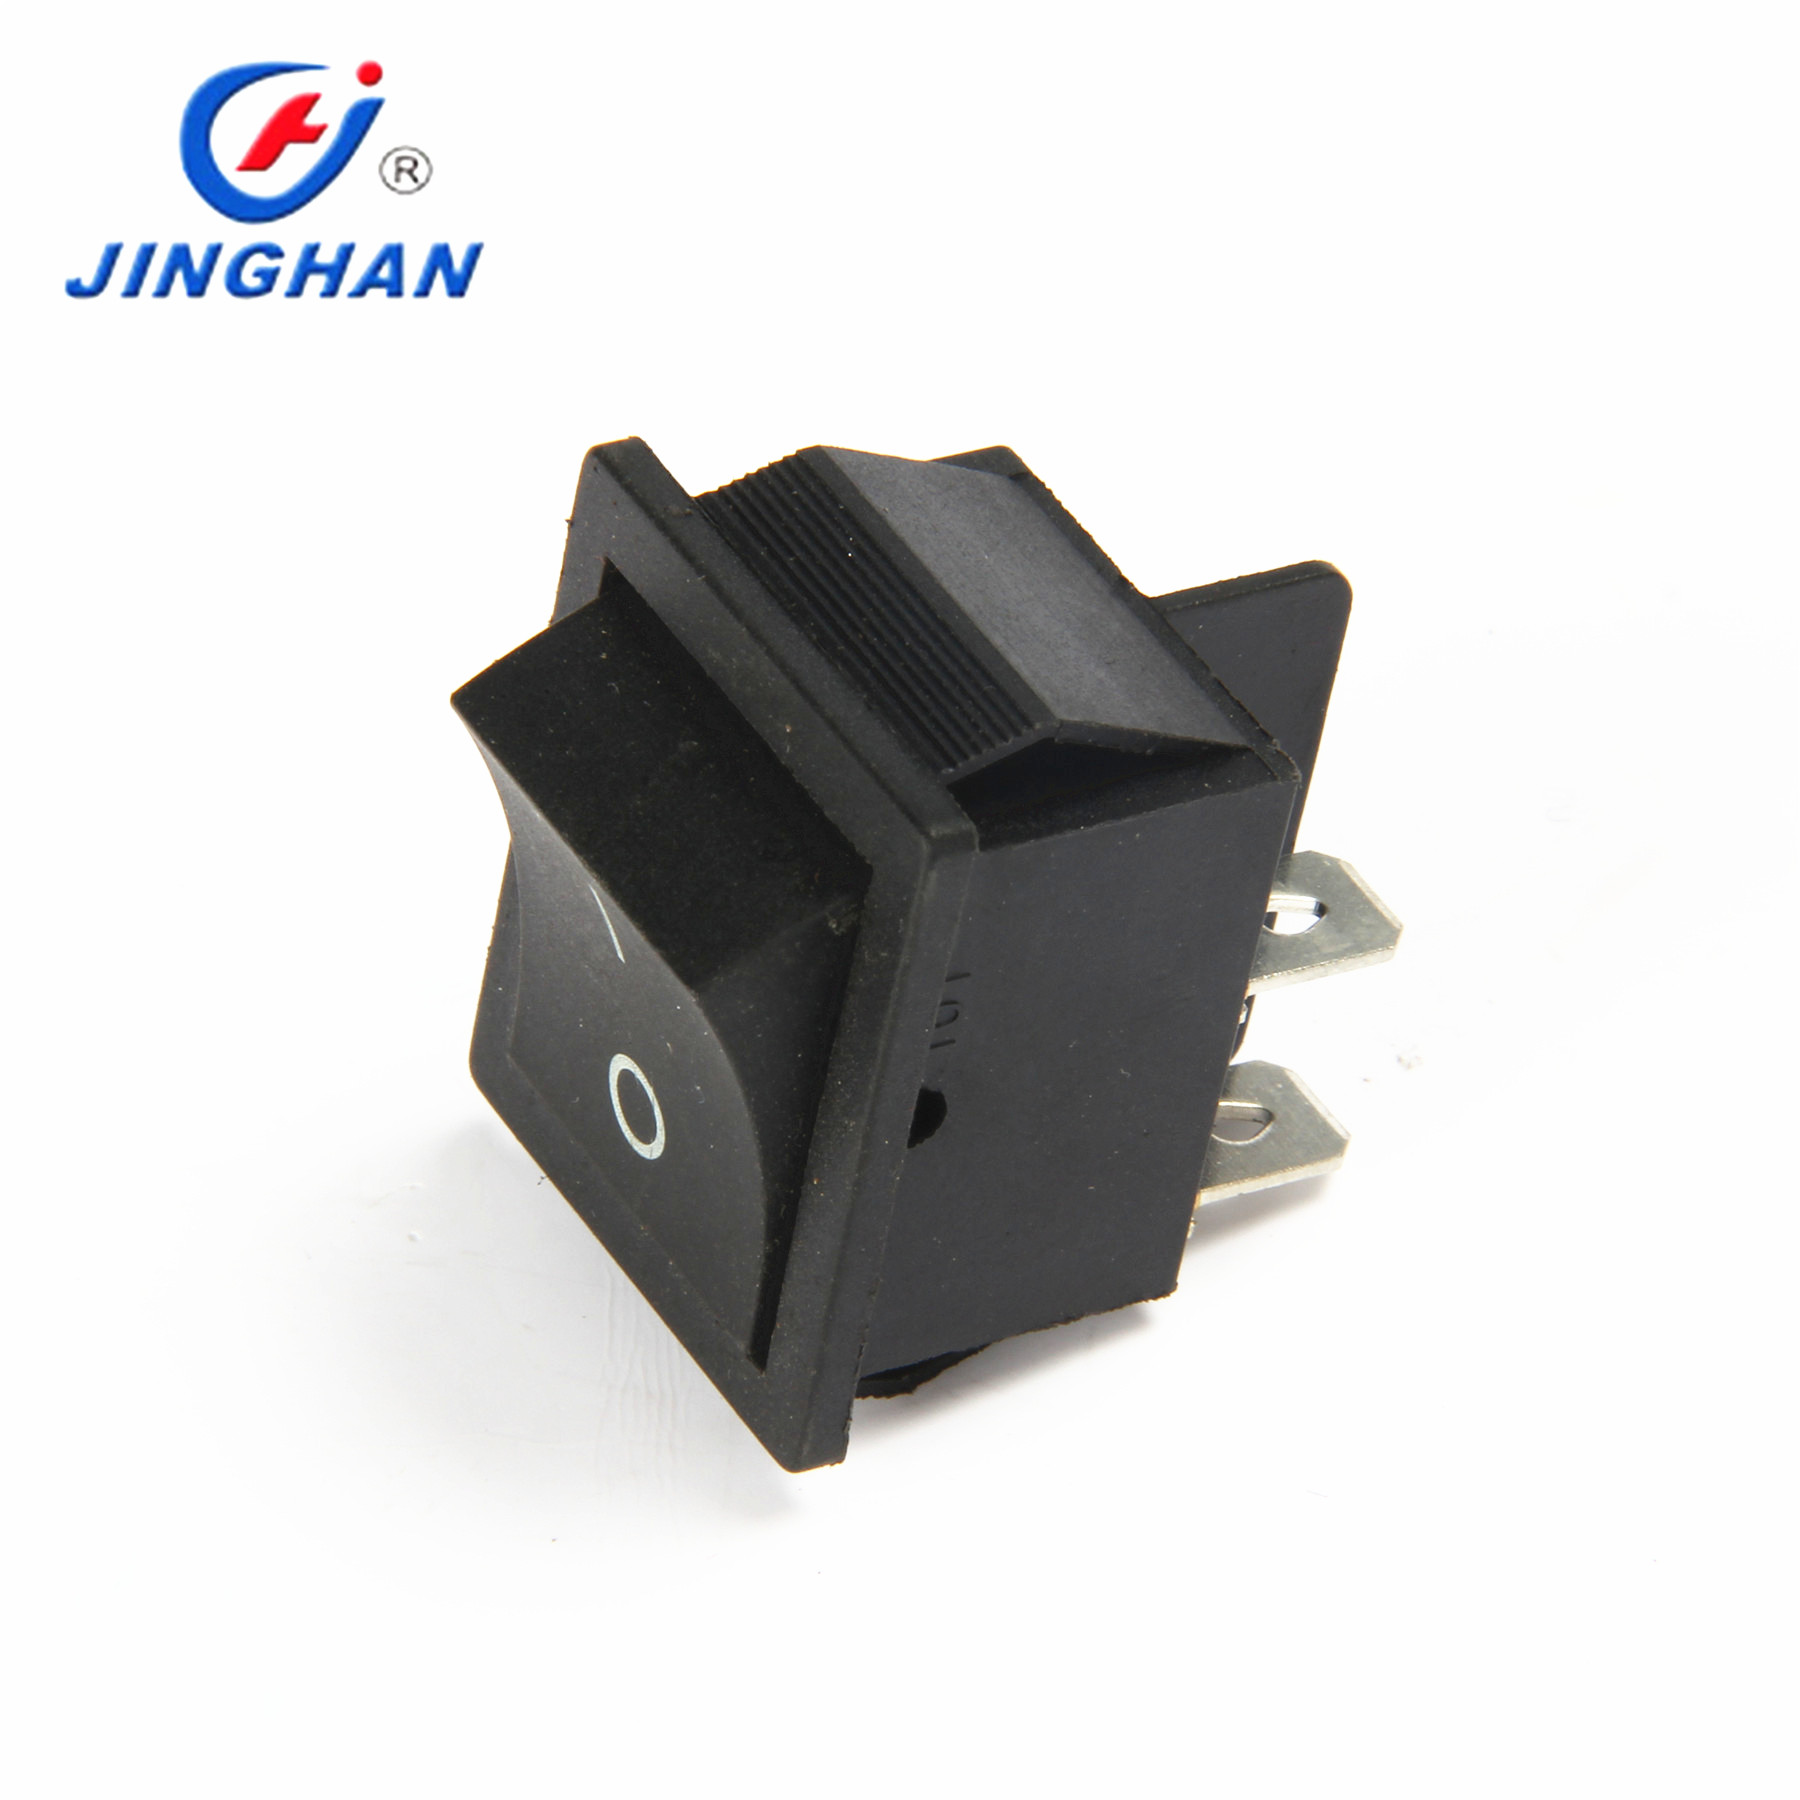 hight resolution of high quality wiring diagram black 4 pin on off 30 22mm rocker switch 4 pin illuminated rocker switch wiring rocker switch wiring 4 pin